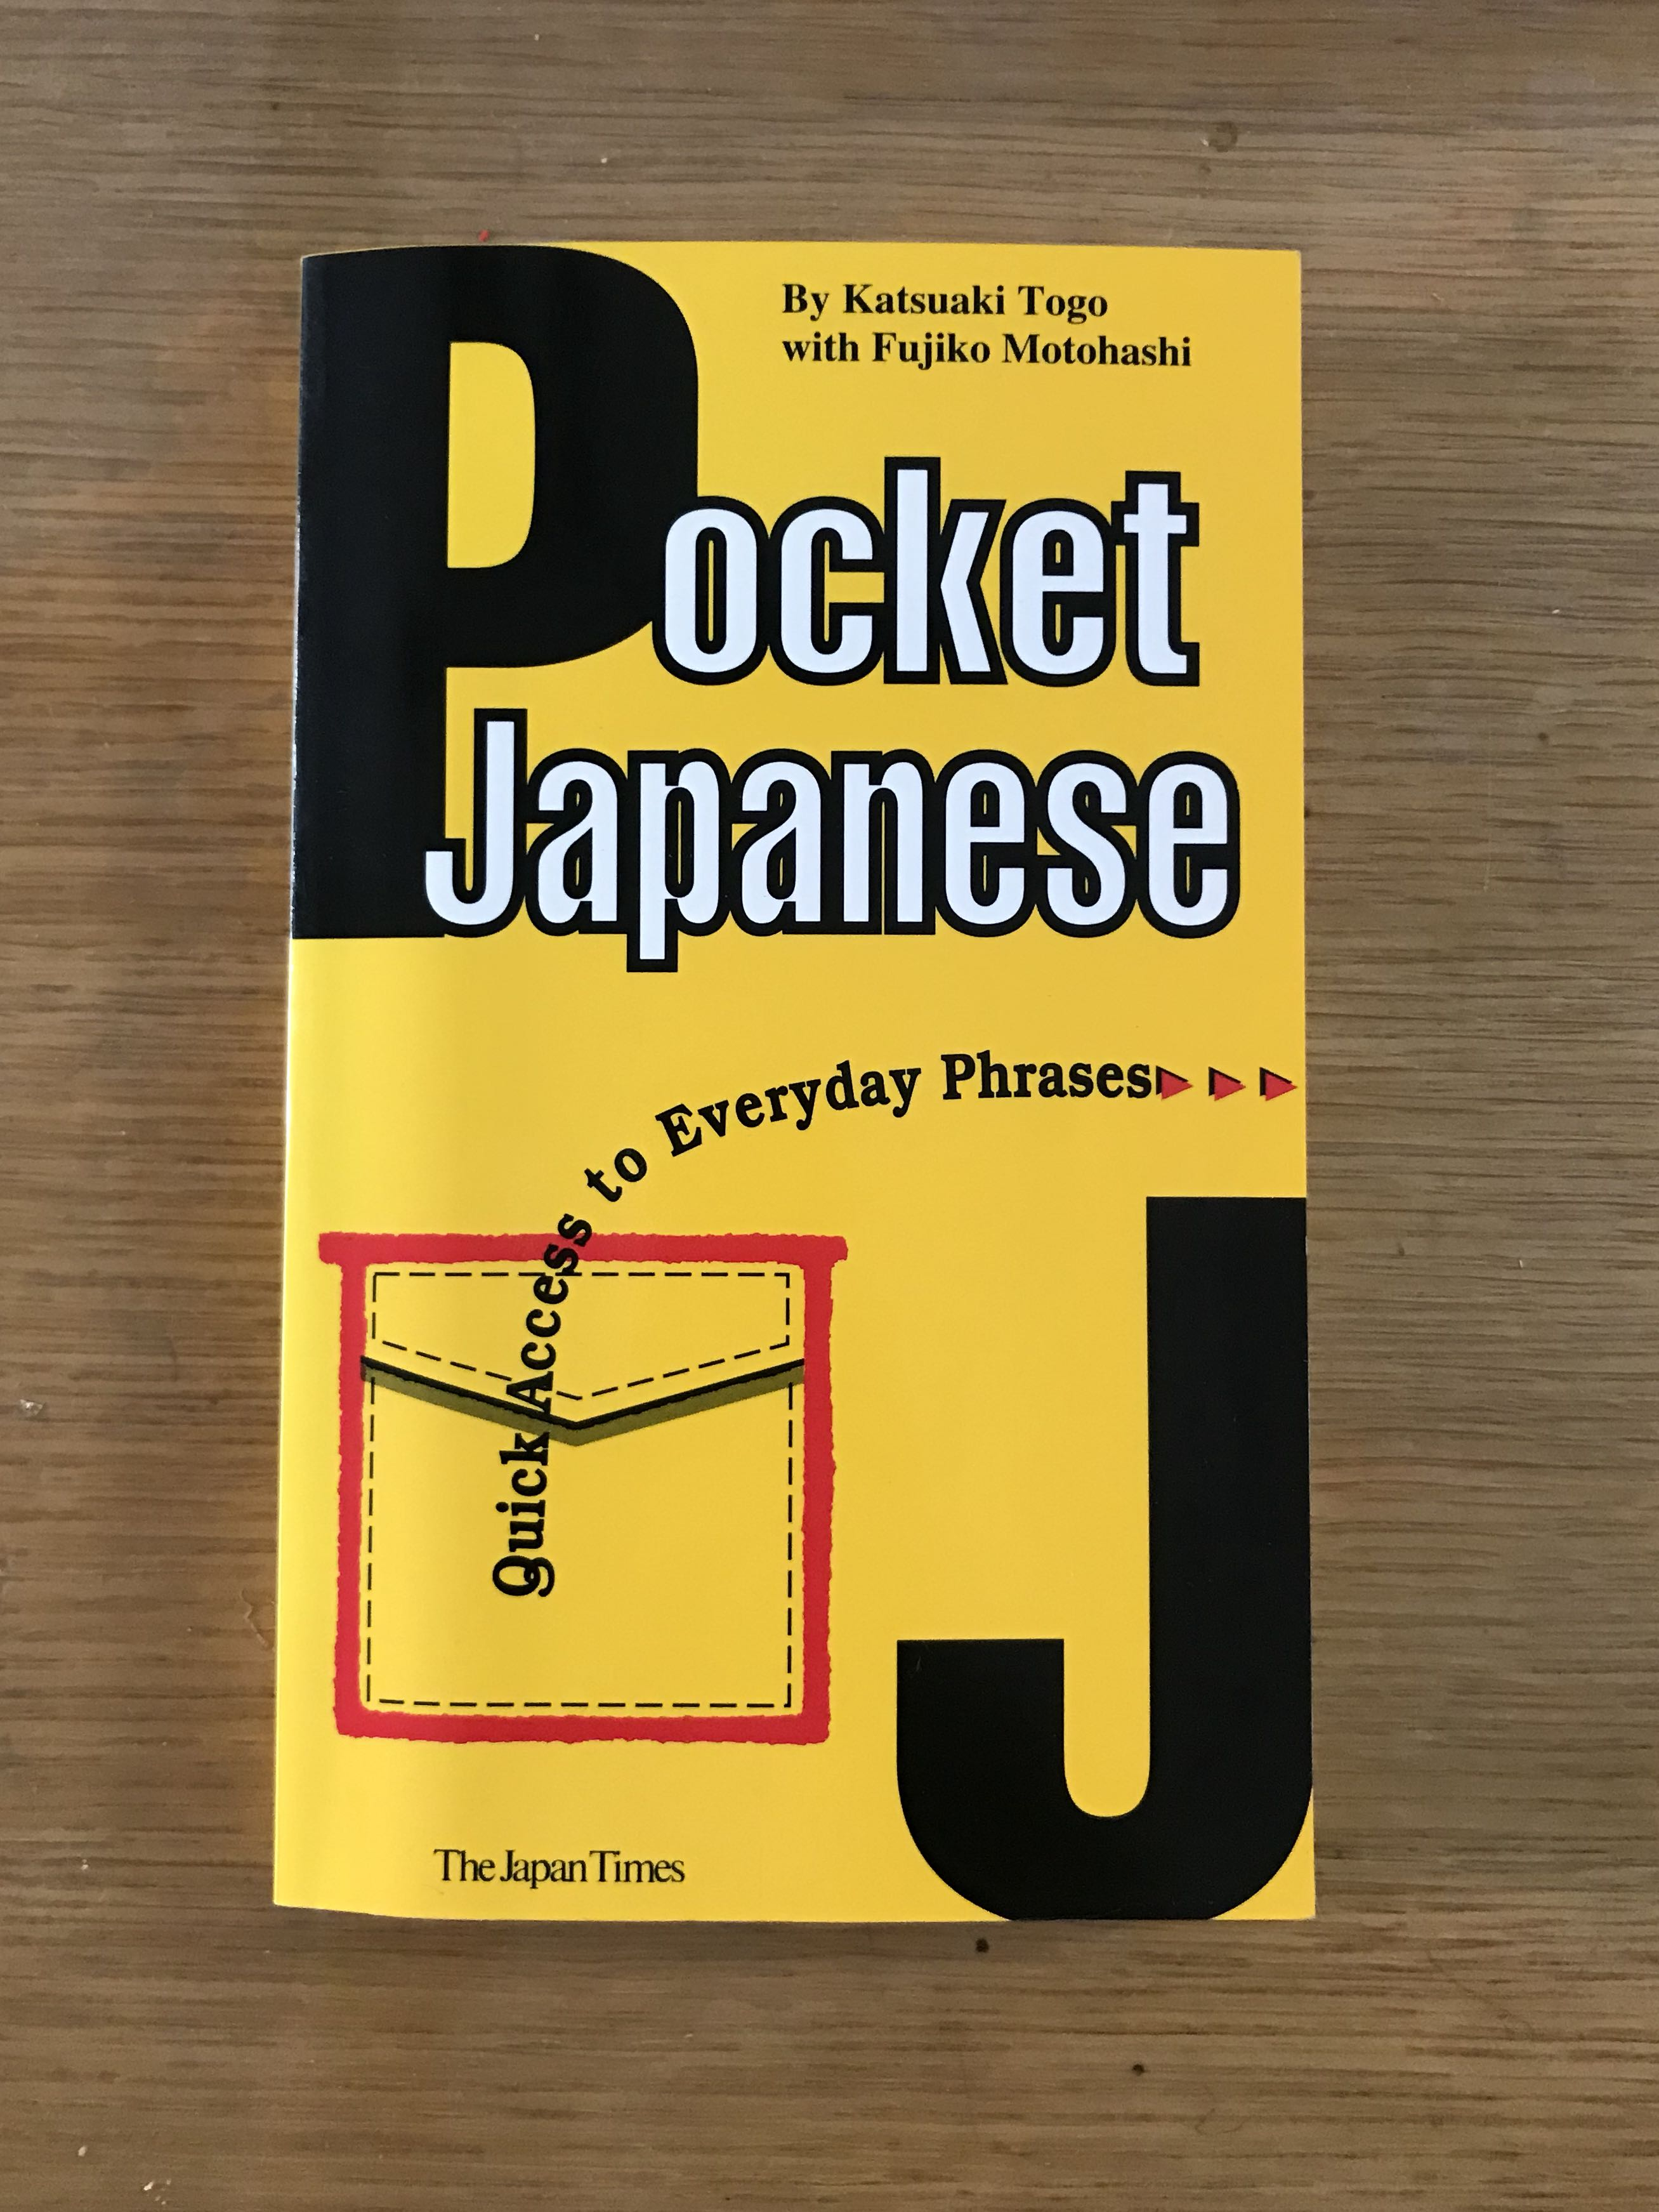 Pocket Japanese for daily Use or travel